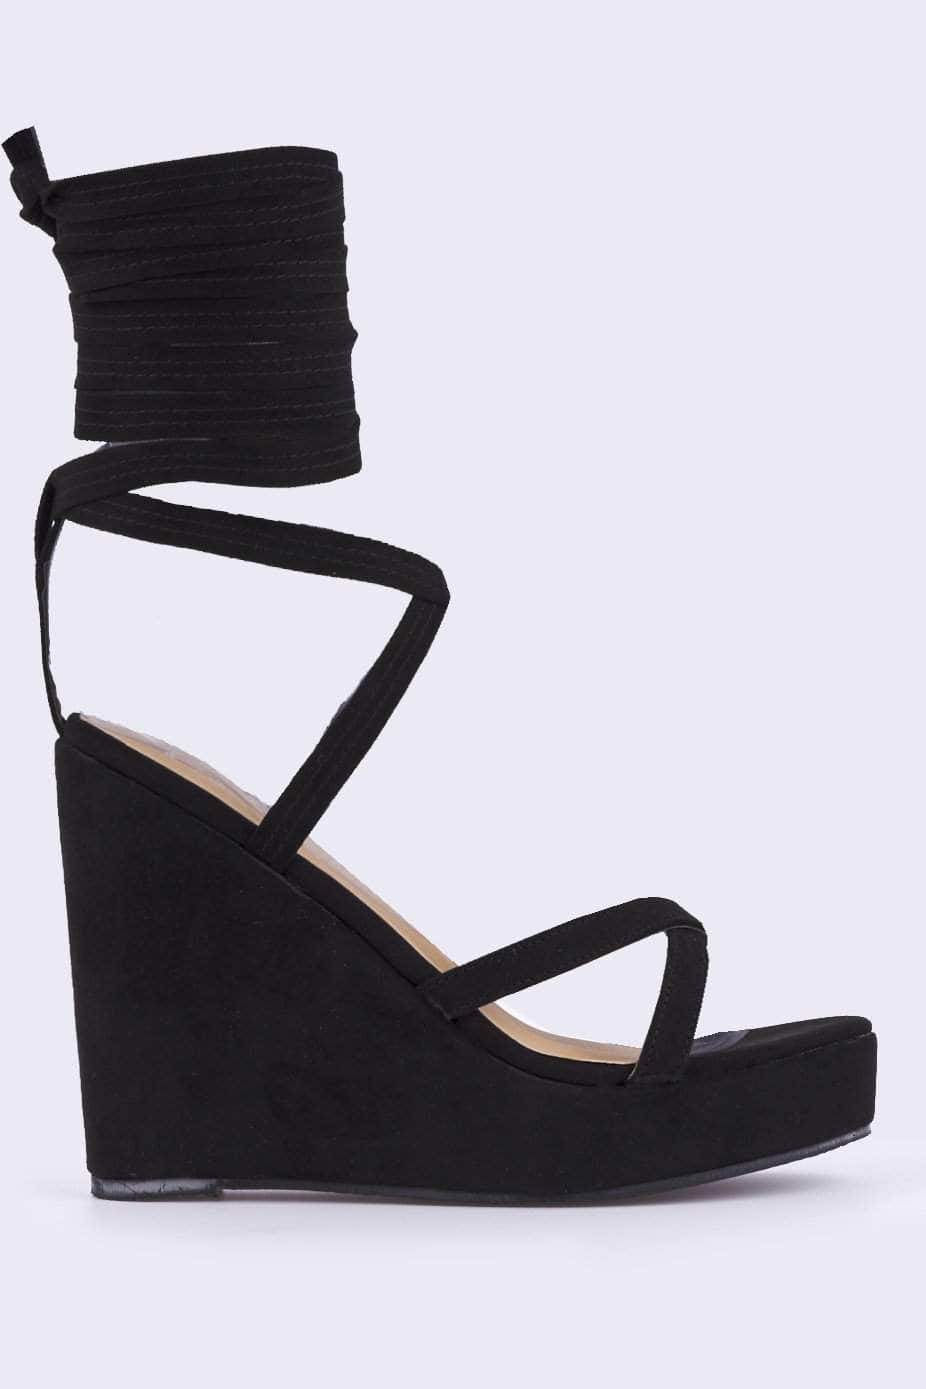 Black Suede Lace Up Wedge Sandals